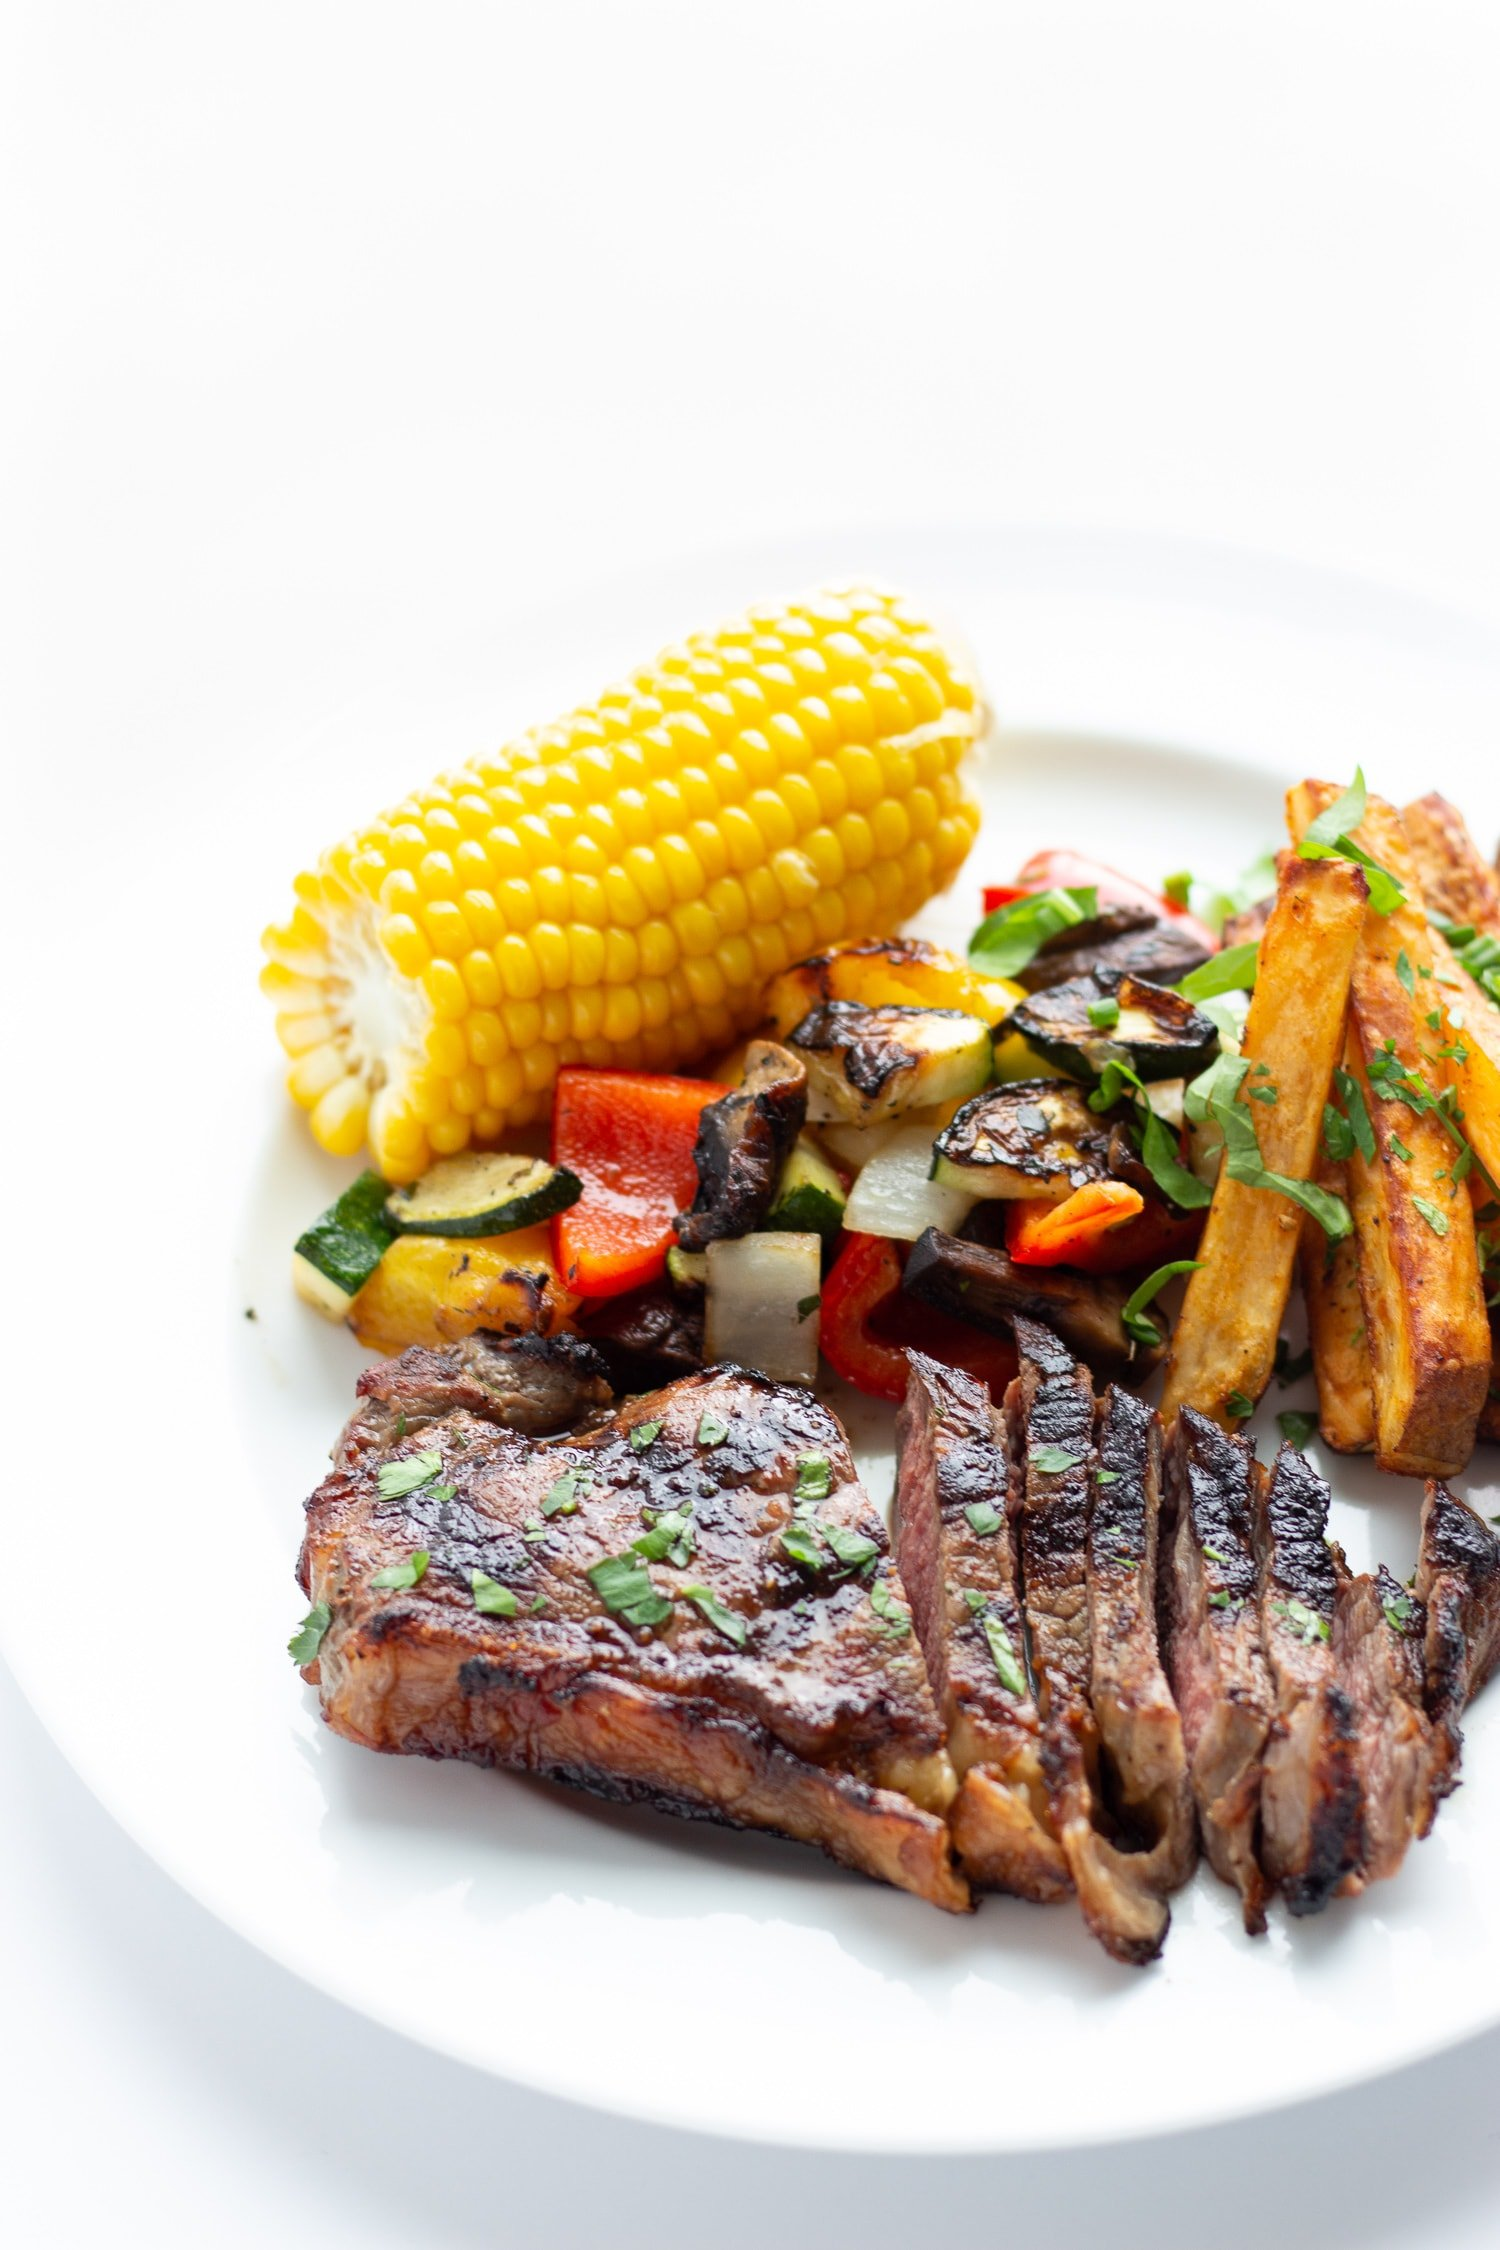 Grilled steak dinner on a white plate containing steak, corn on the cob, grilled mixed vegetables and roasted potatoes